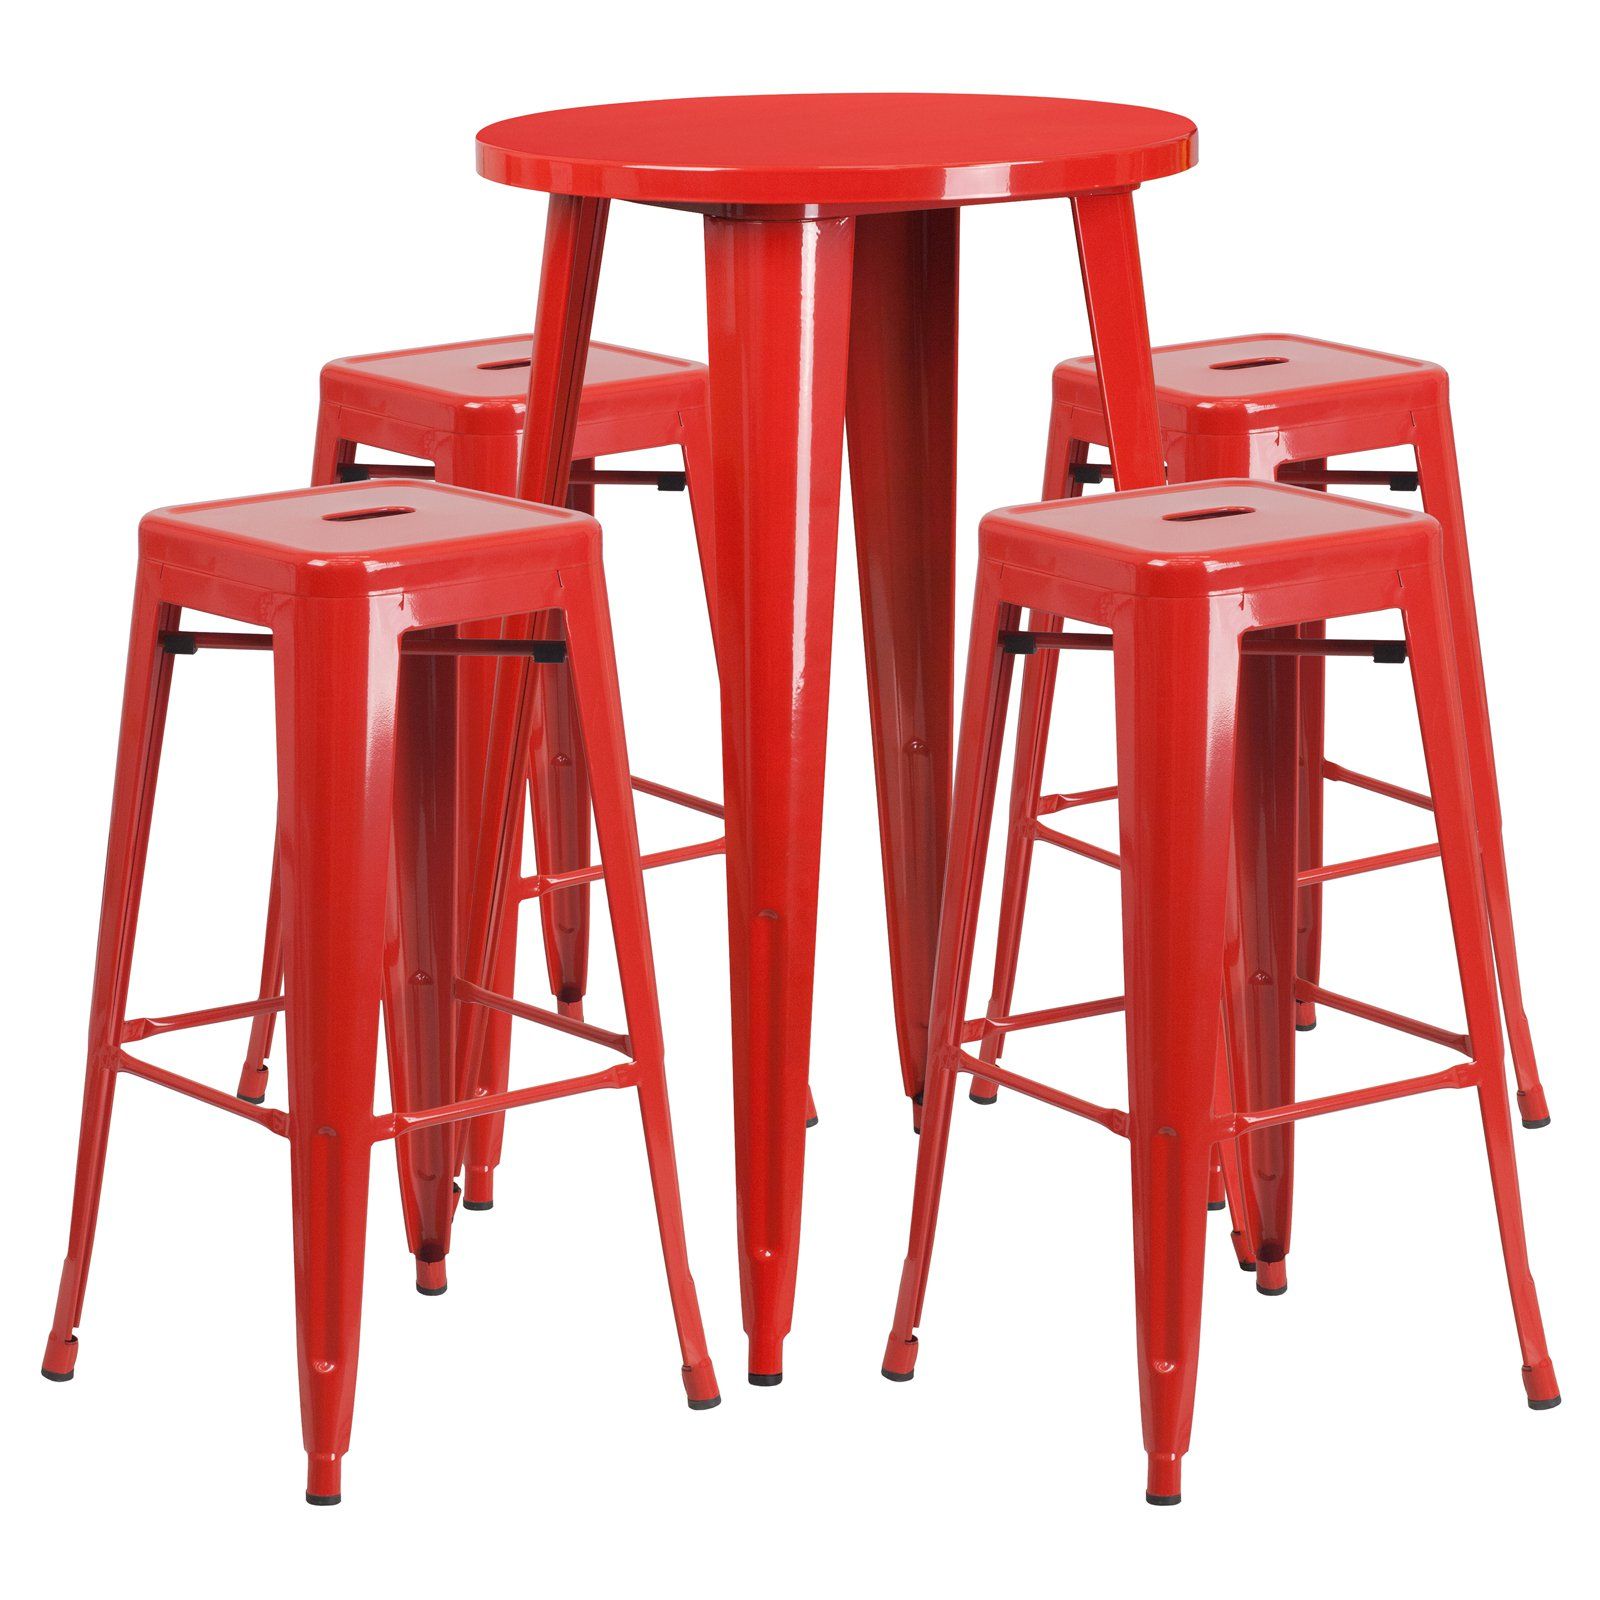 "Flash Furniture 24"" Round Metal Indoor-Outdoor Bar Table Set with 4 Square Seat Backless Barstools, Multiple Colors"